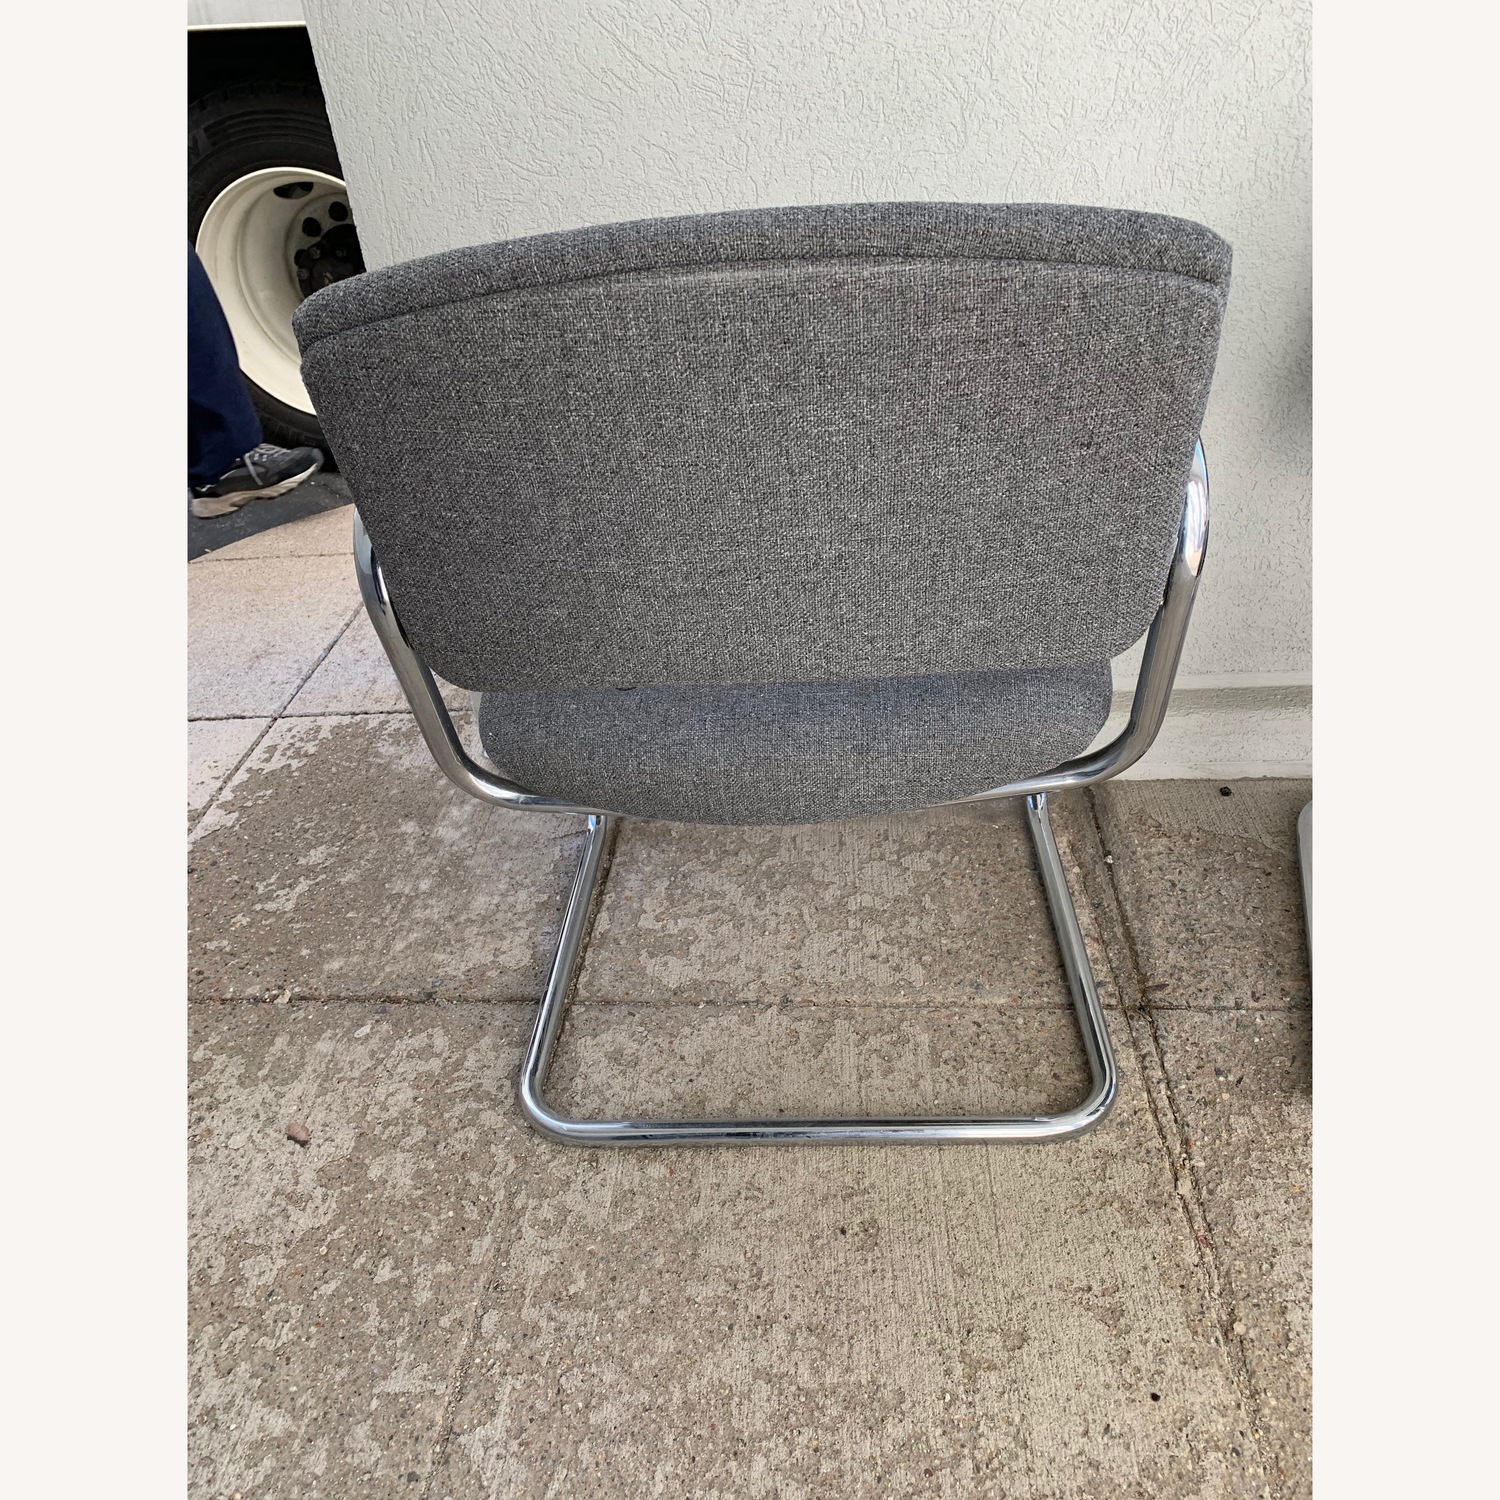 United Chair Company Cantilever Chairs - image-1